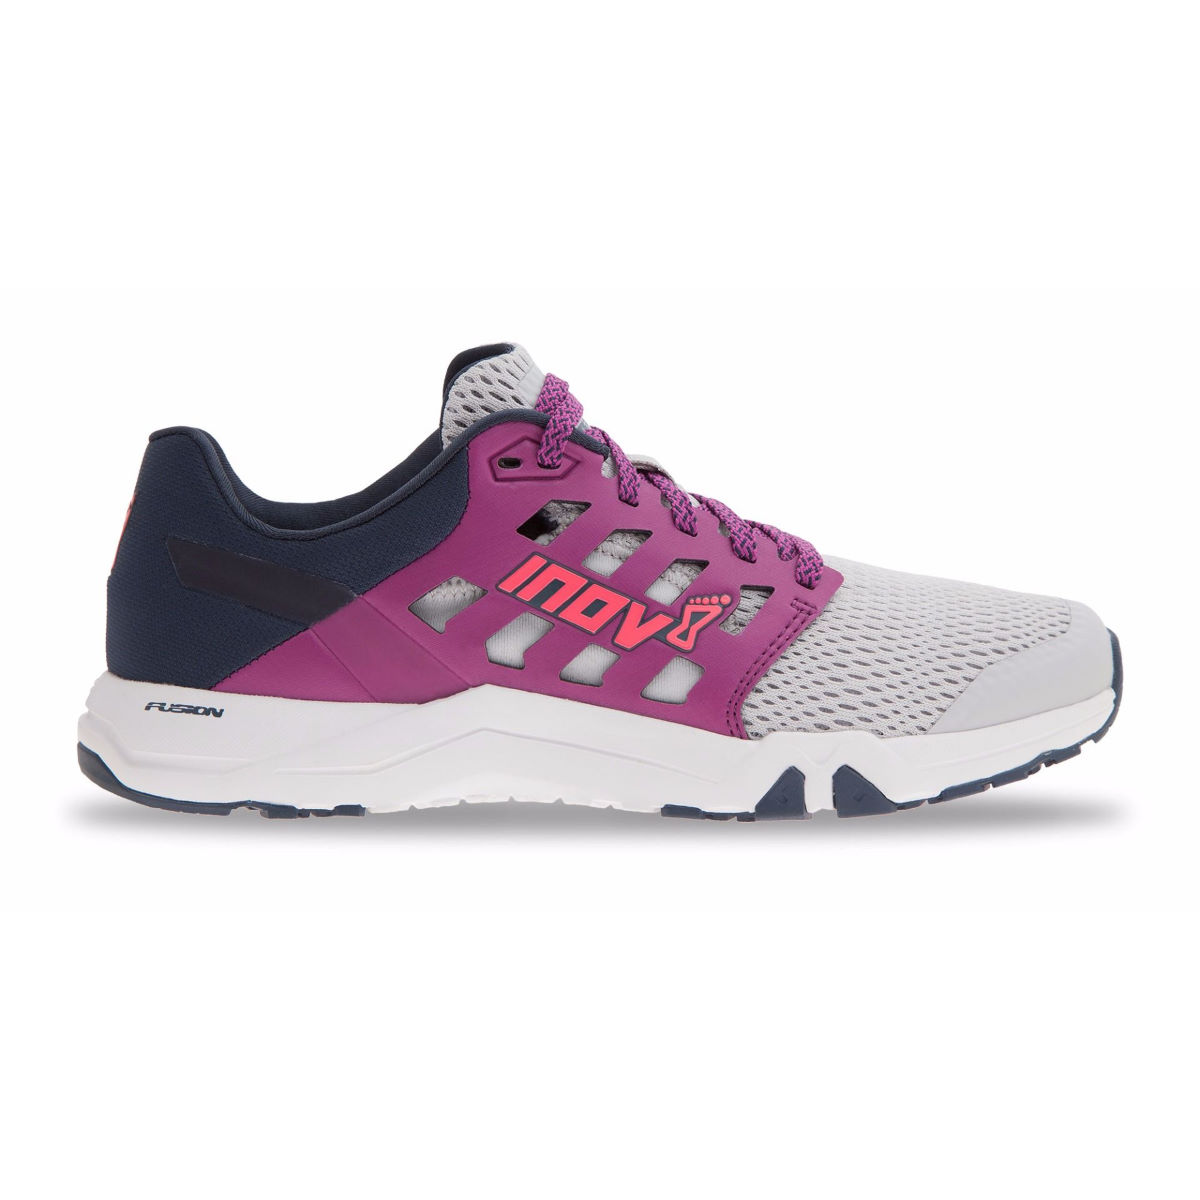 Chaussures Femme Inov-8 All Train 215 - UK 4 DARK GREY/PINK/BLACK